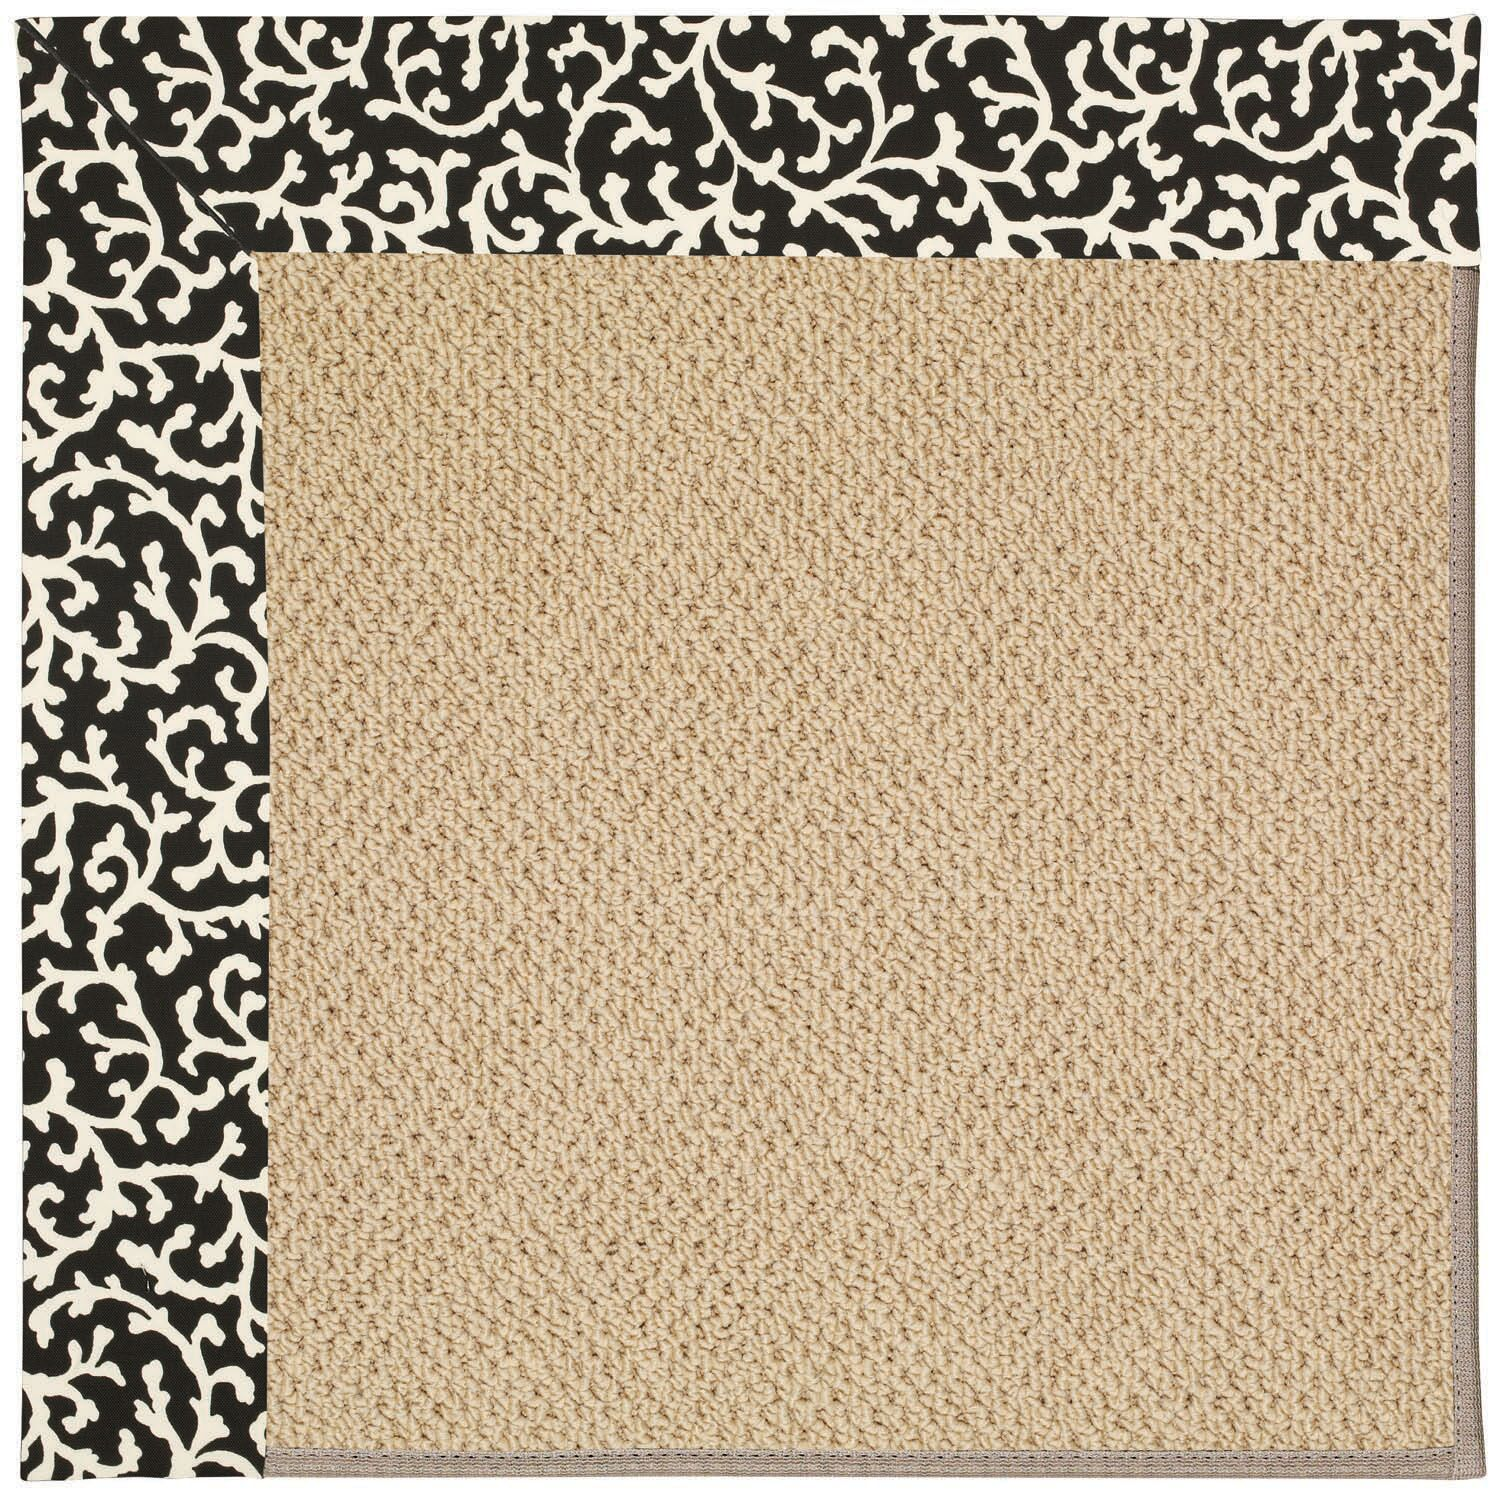 Lisle Machine Tufted Black Cascade and Beige Indoor/Outdoor Area Rug Rug Size: Rectangle 9' x 12'